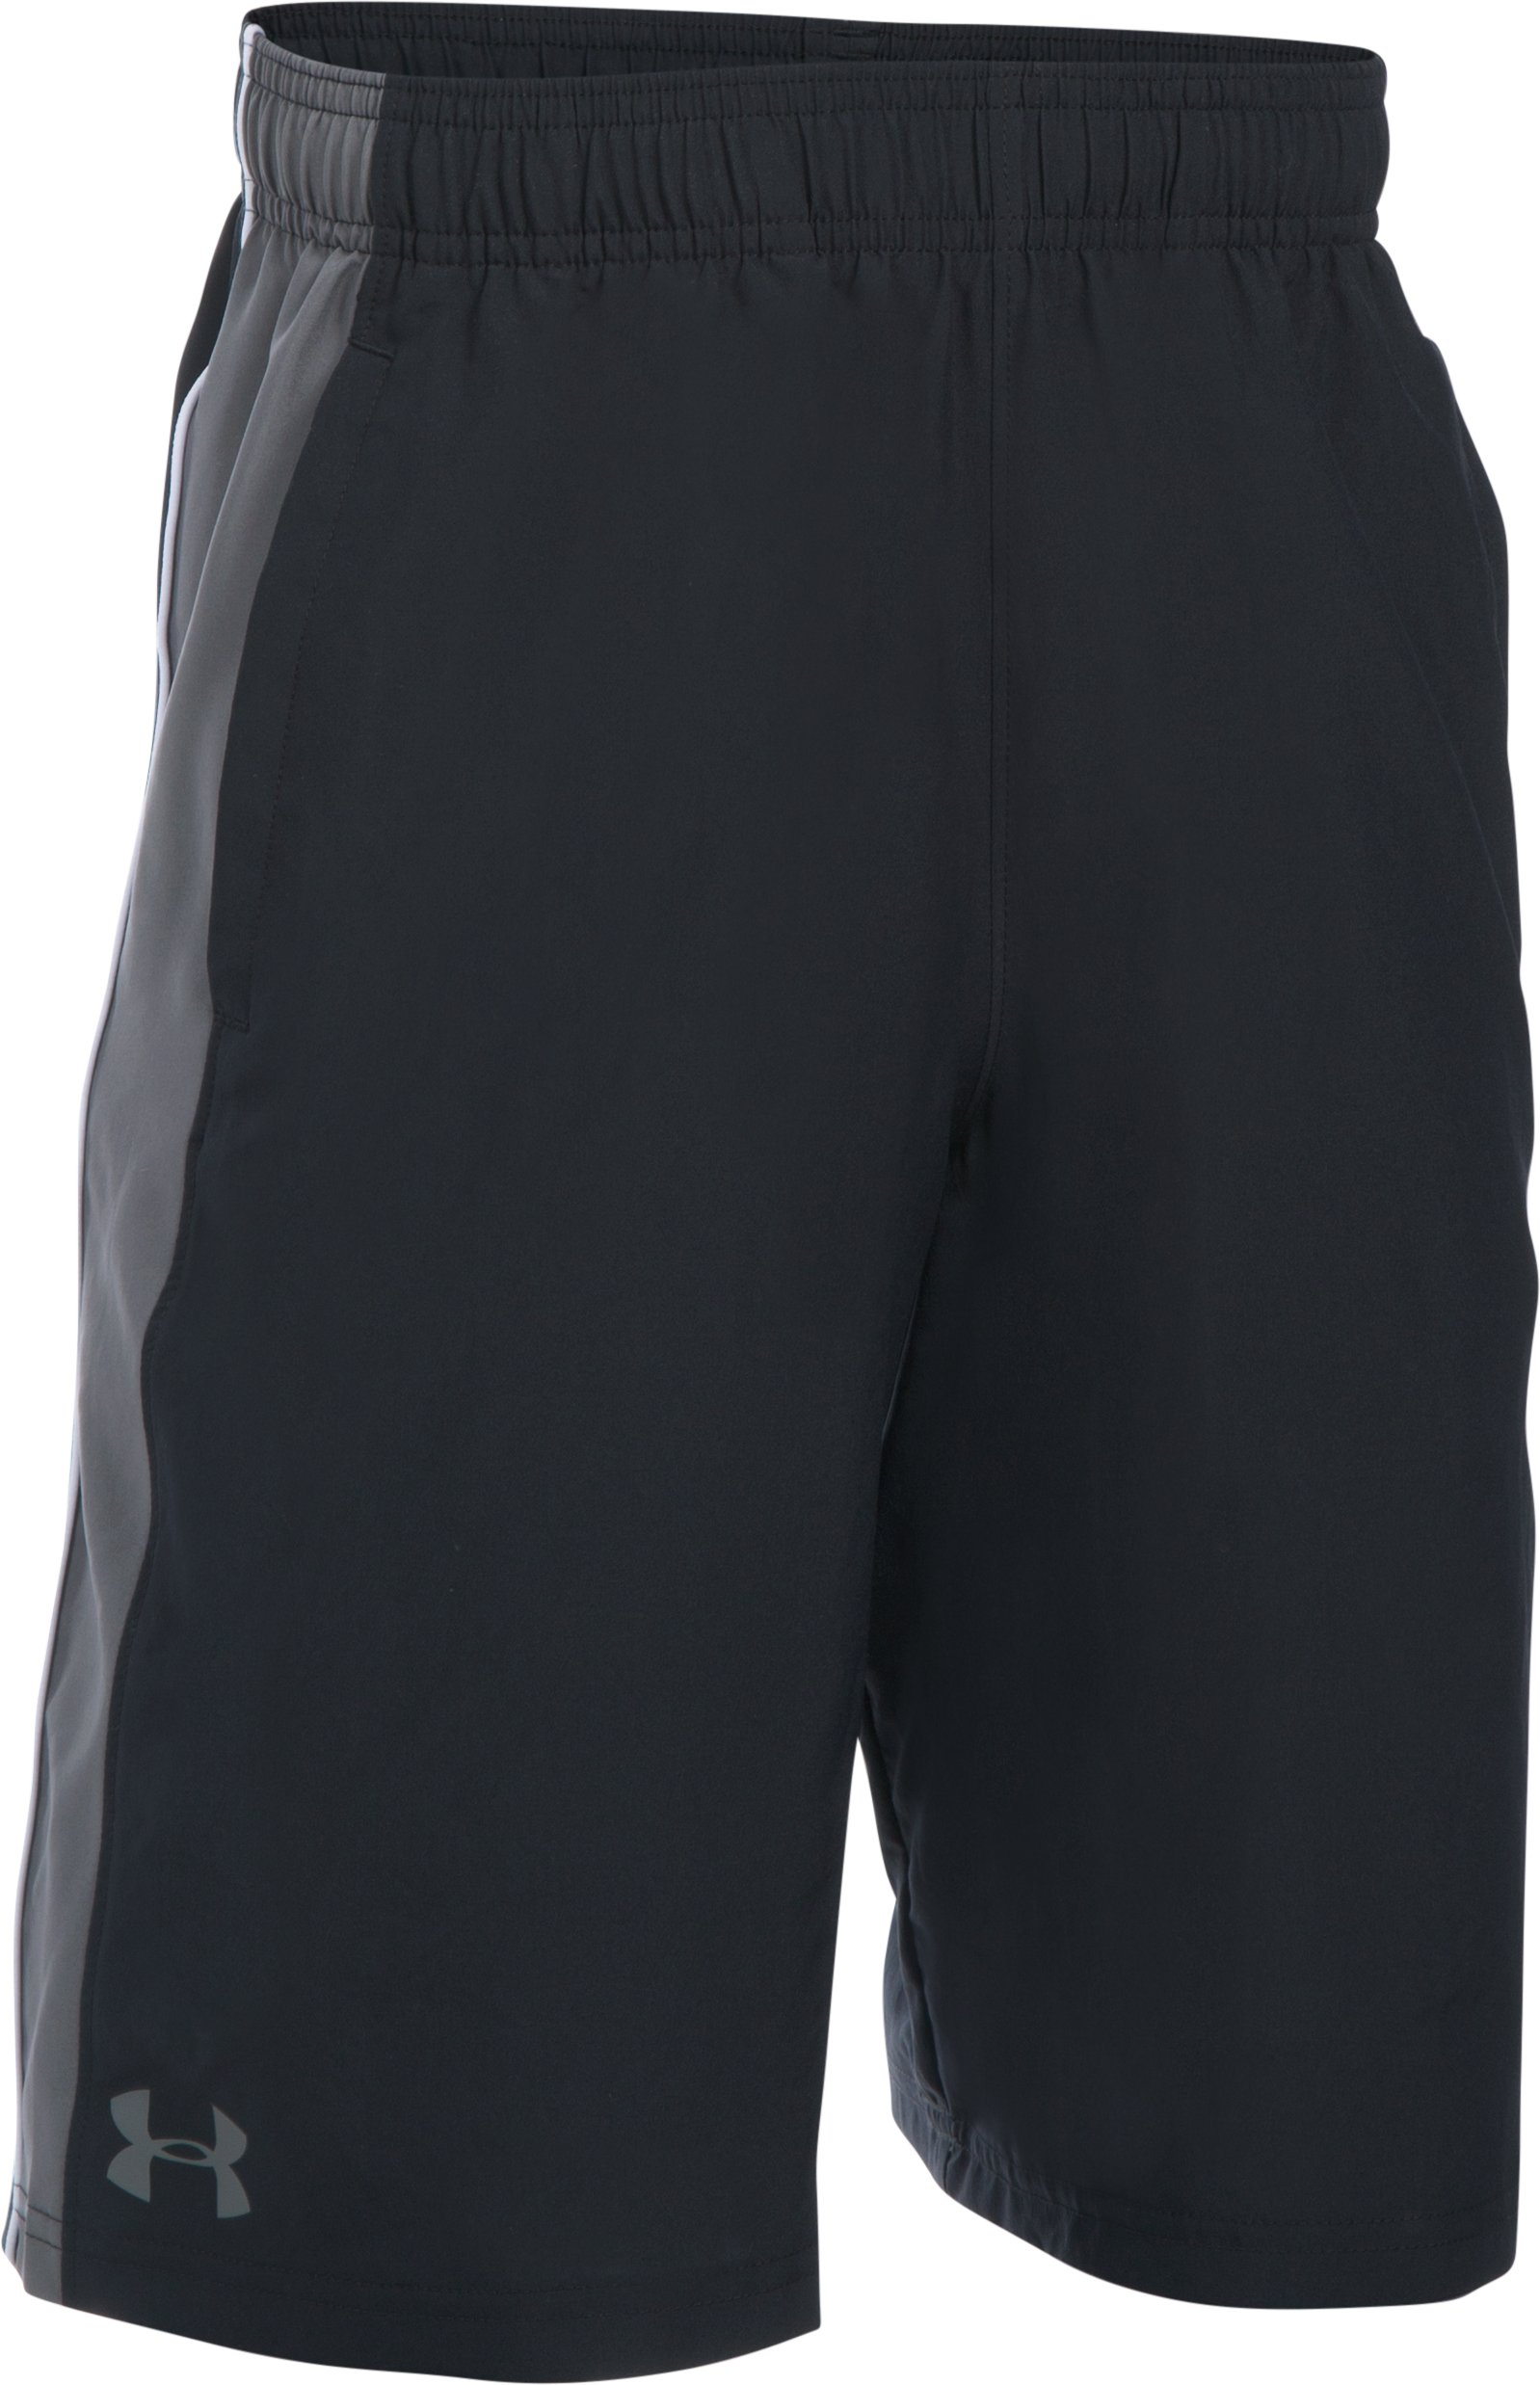 Boys' UA Impulse Woven Shorts, Black